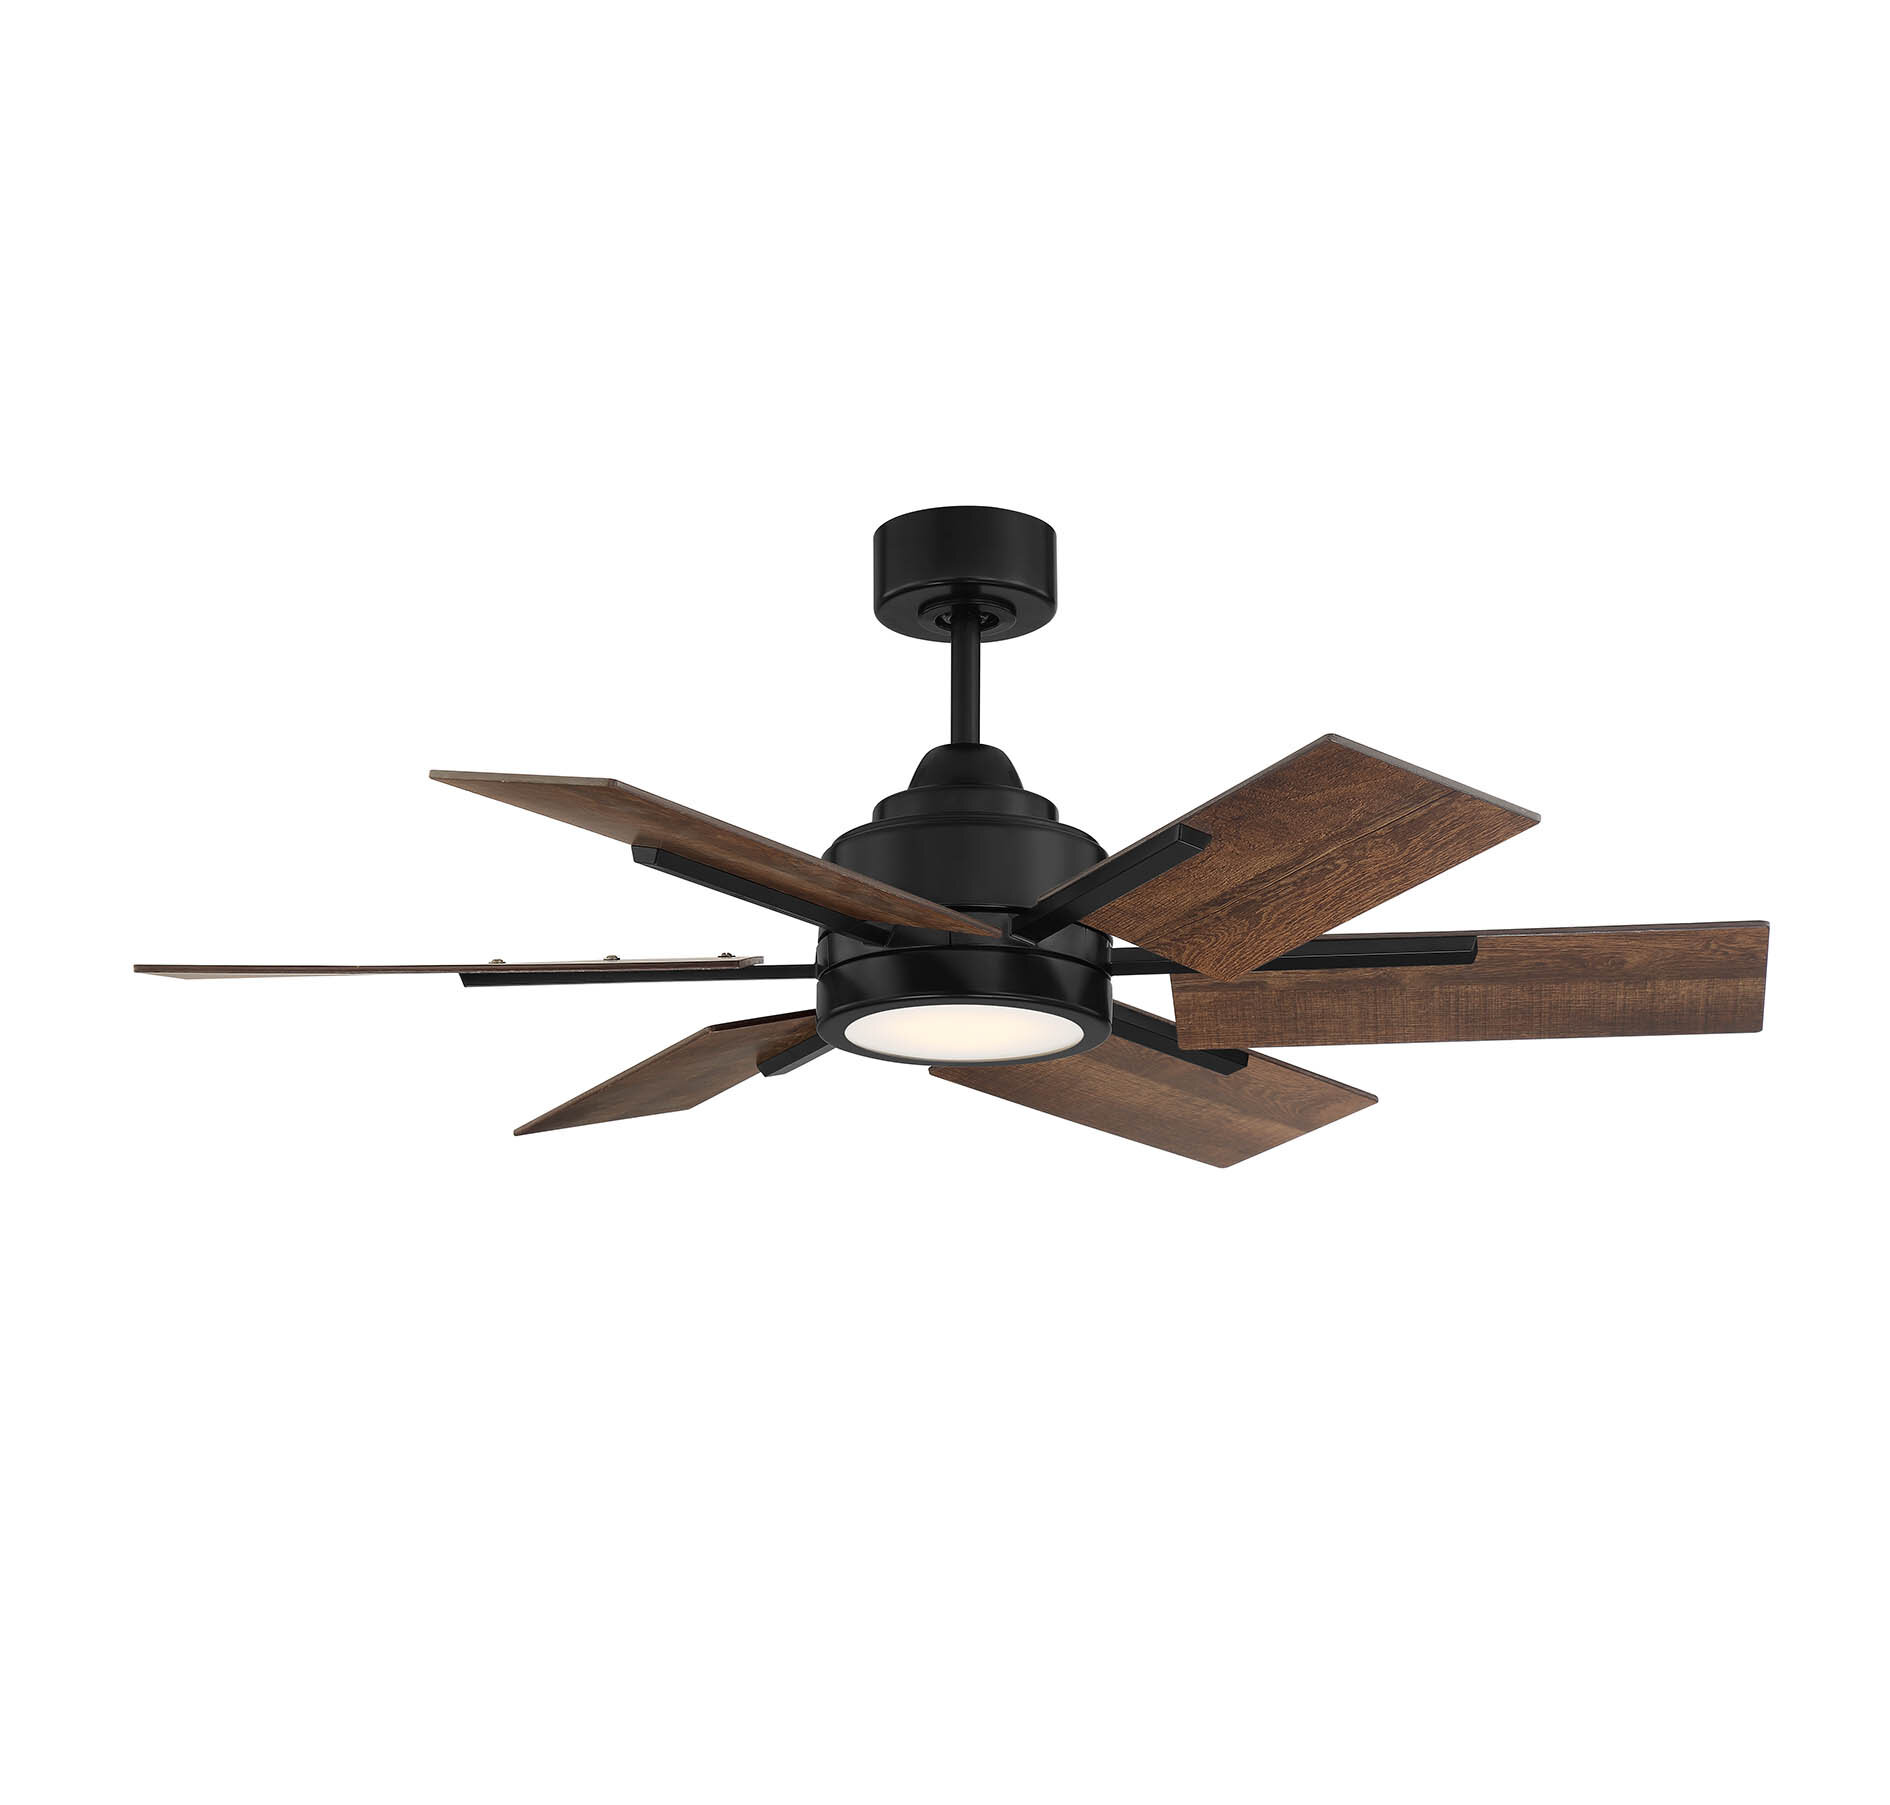 Ivy Bronx 44 Bernardyn 6 Blade Led Ceiling Fan With Remote Light Kit Included Wayfair Ca